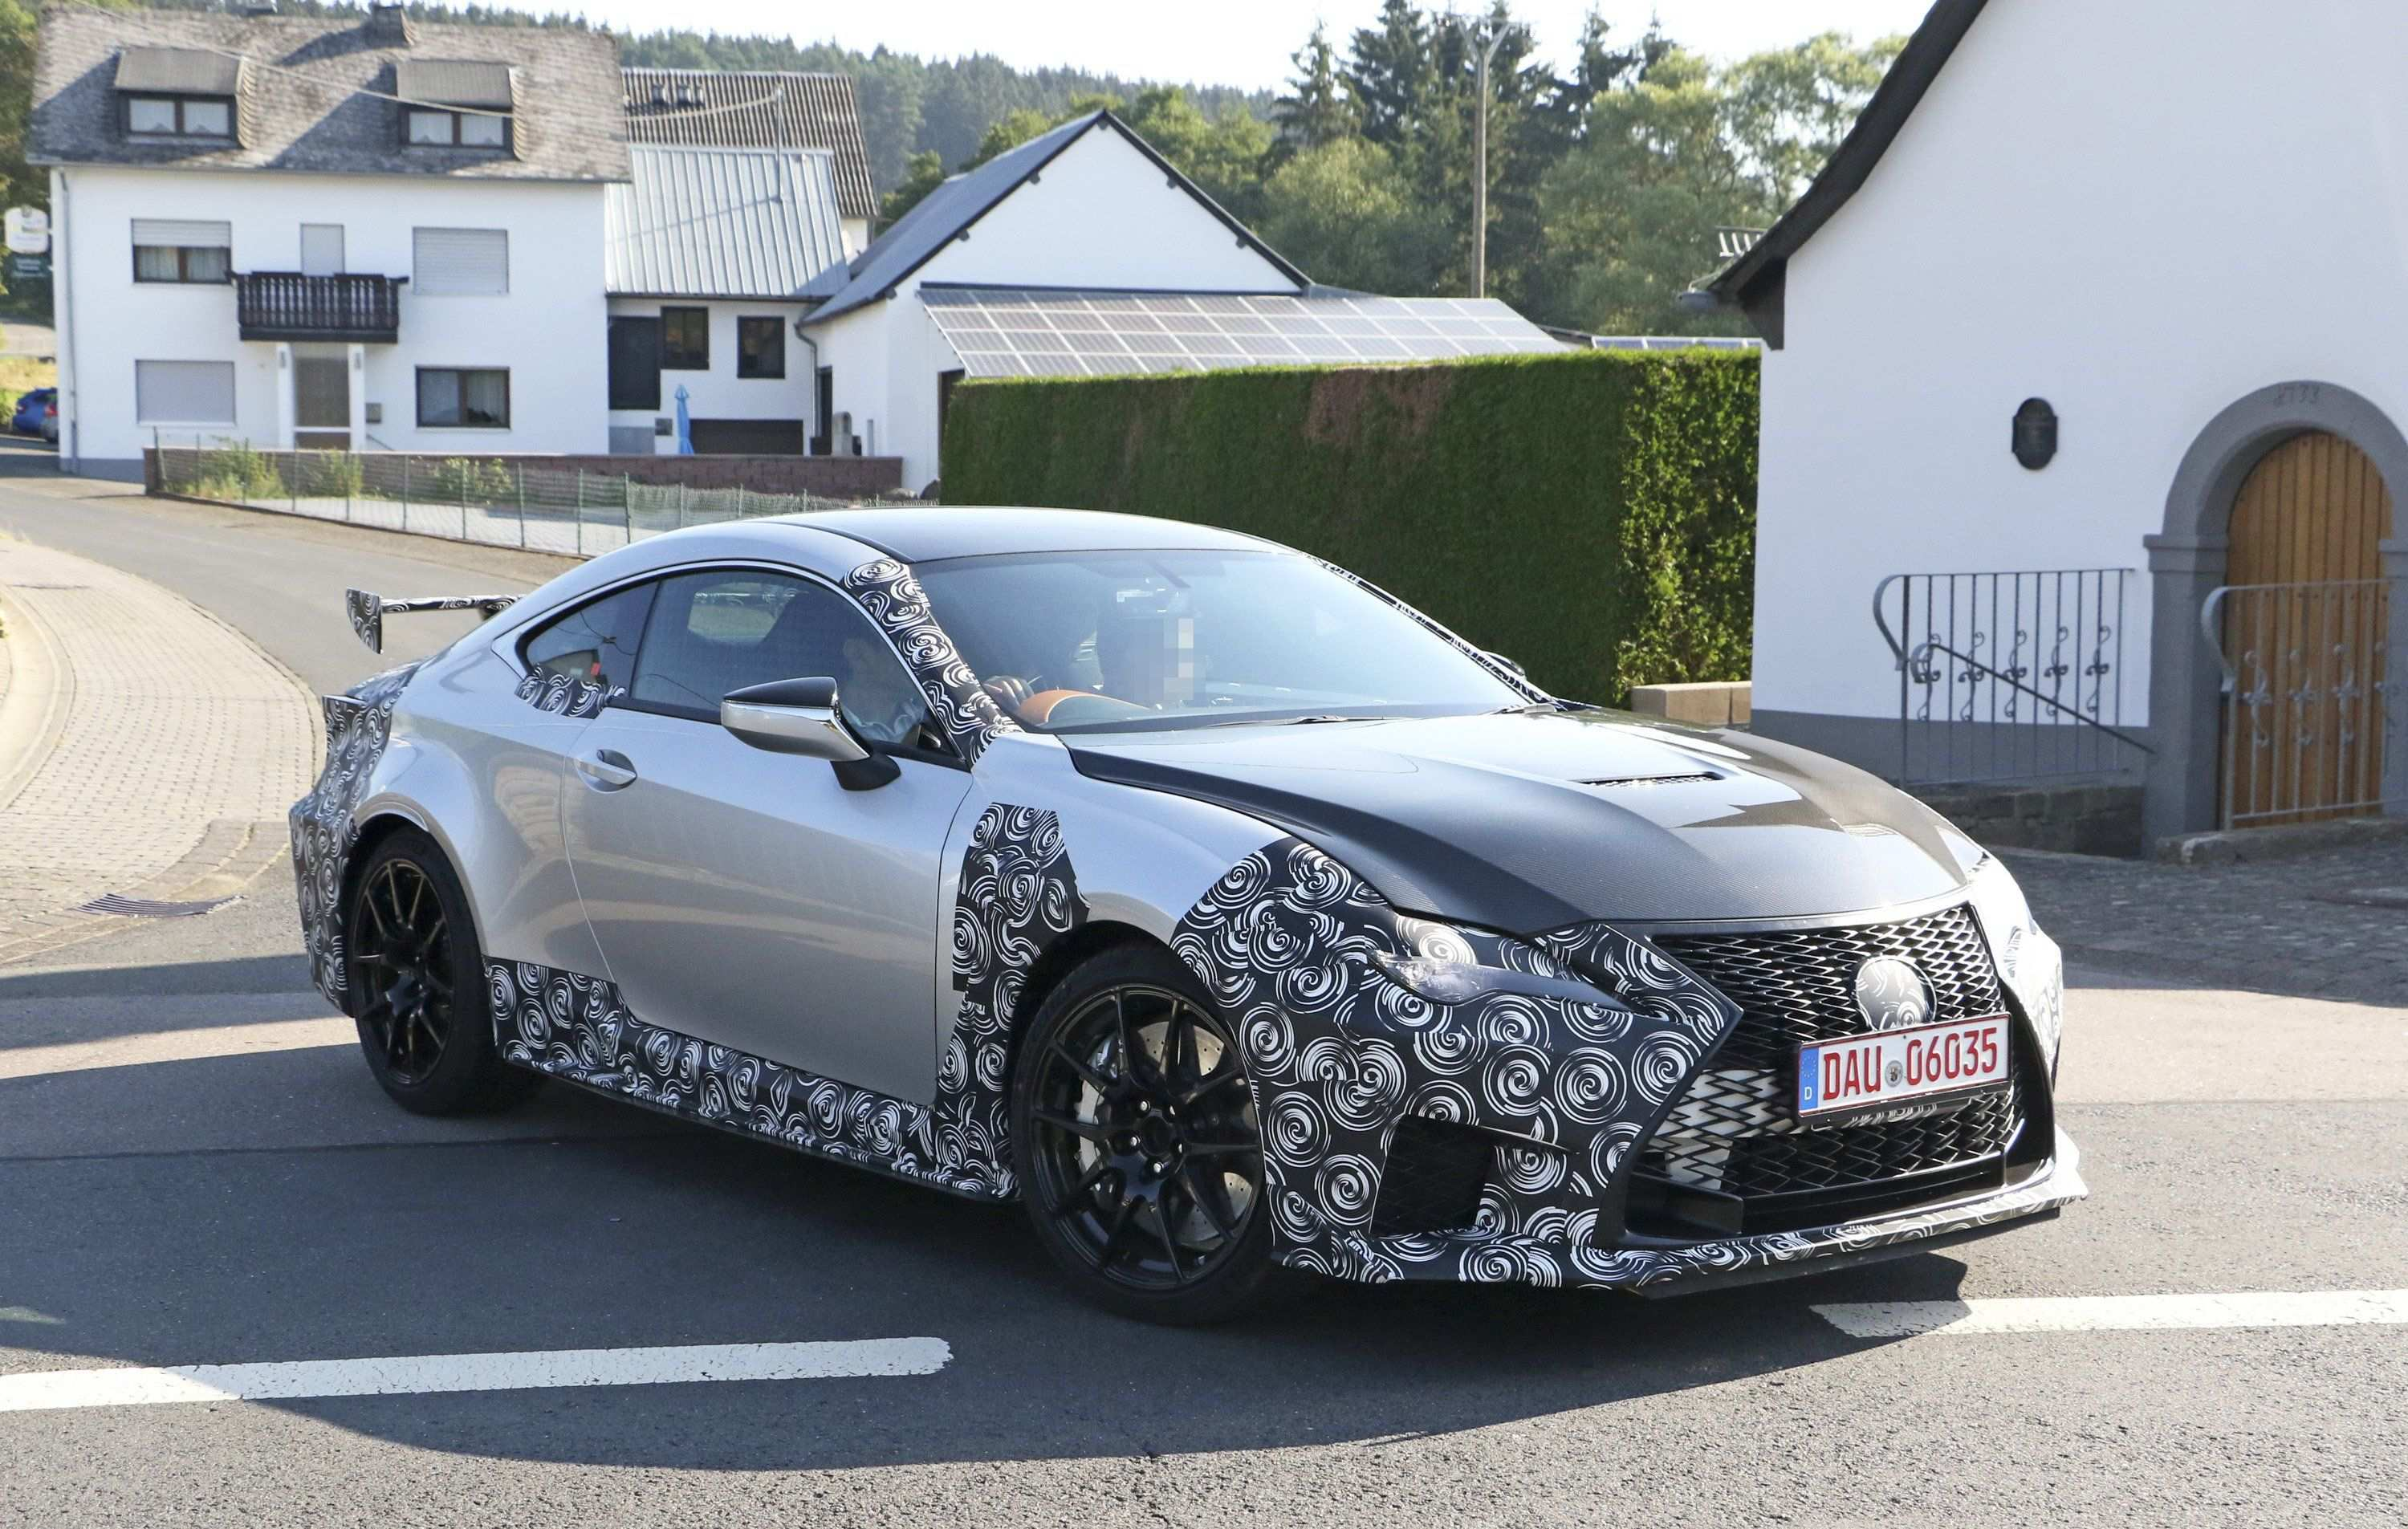 52 Great Lexus Isf 2020 Exterior and Interior by Lexus Isf 2020